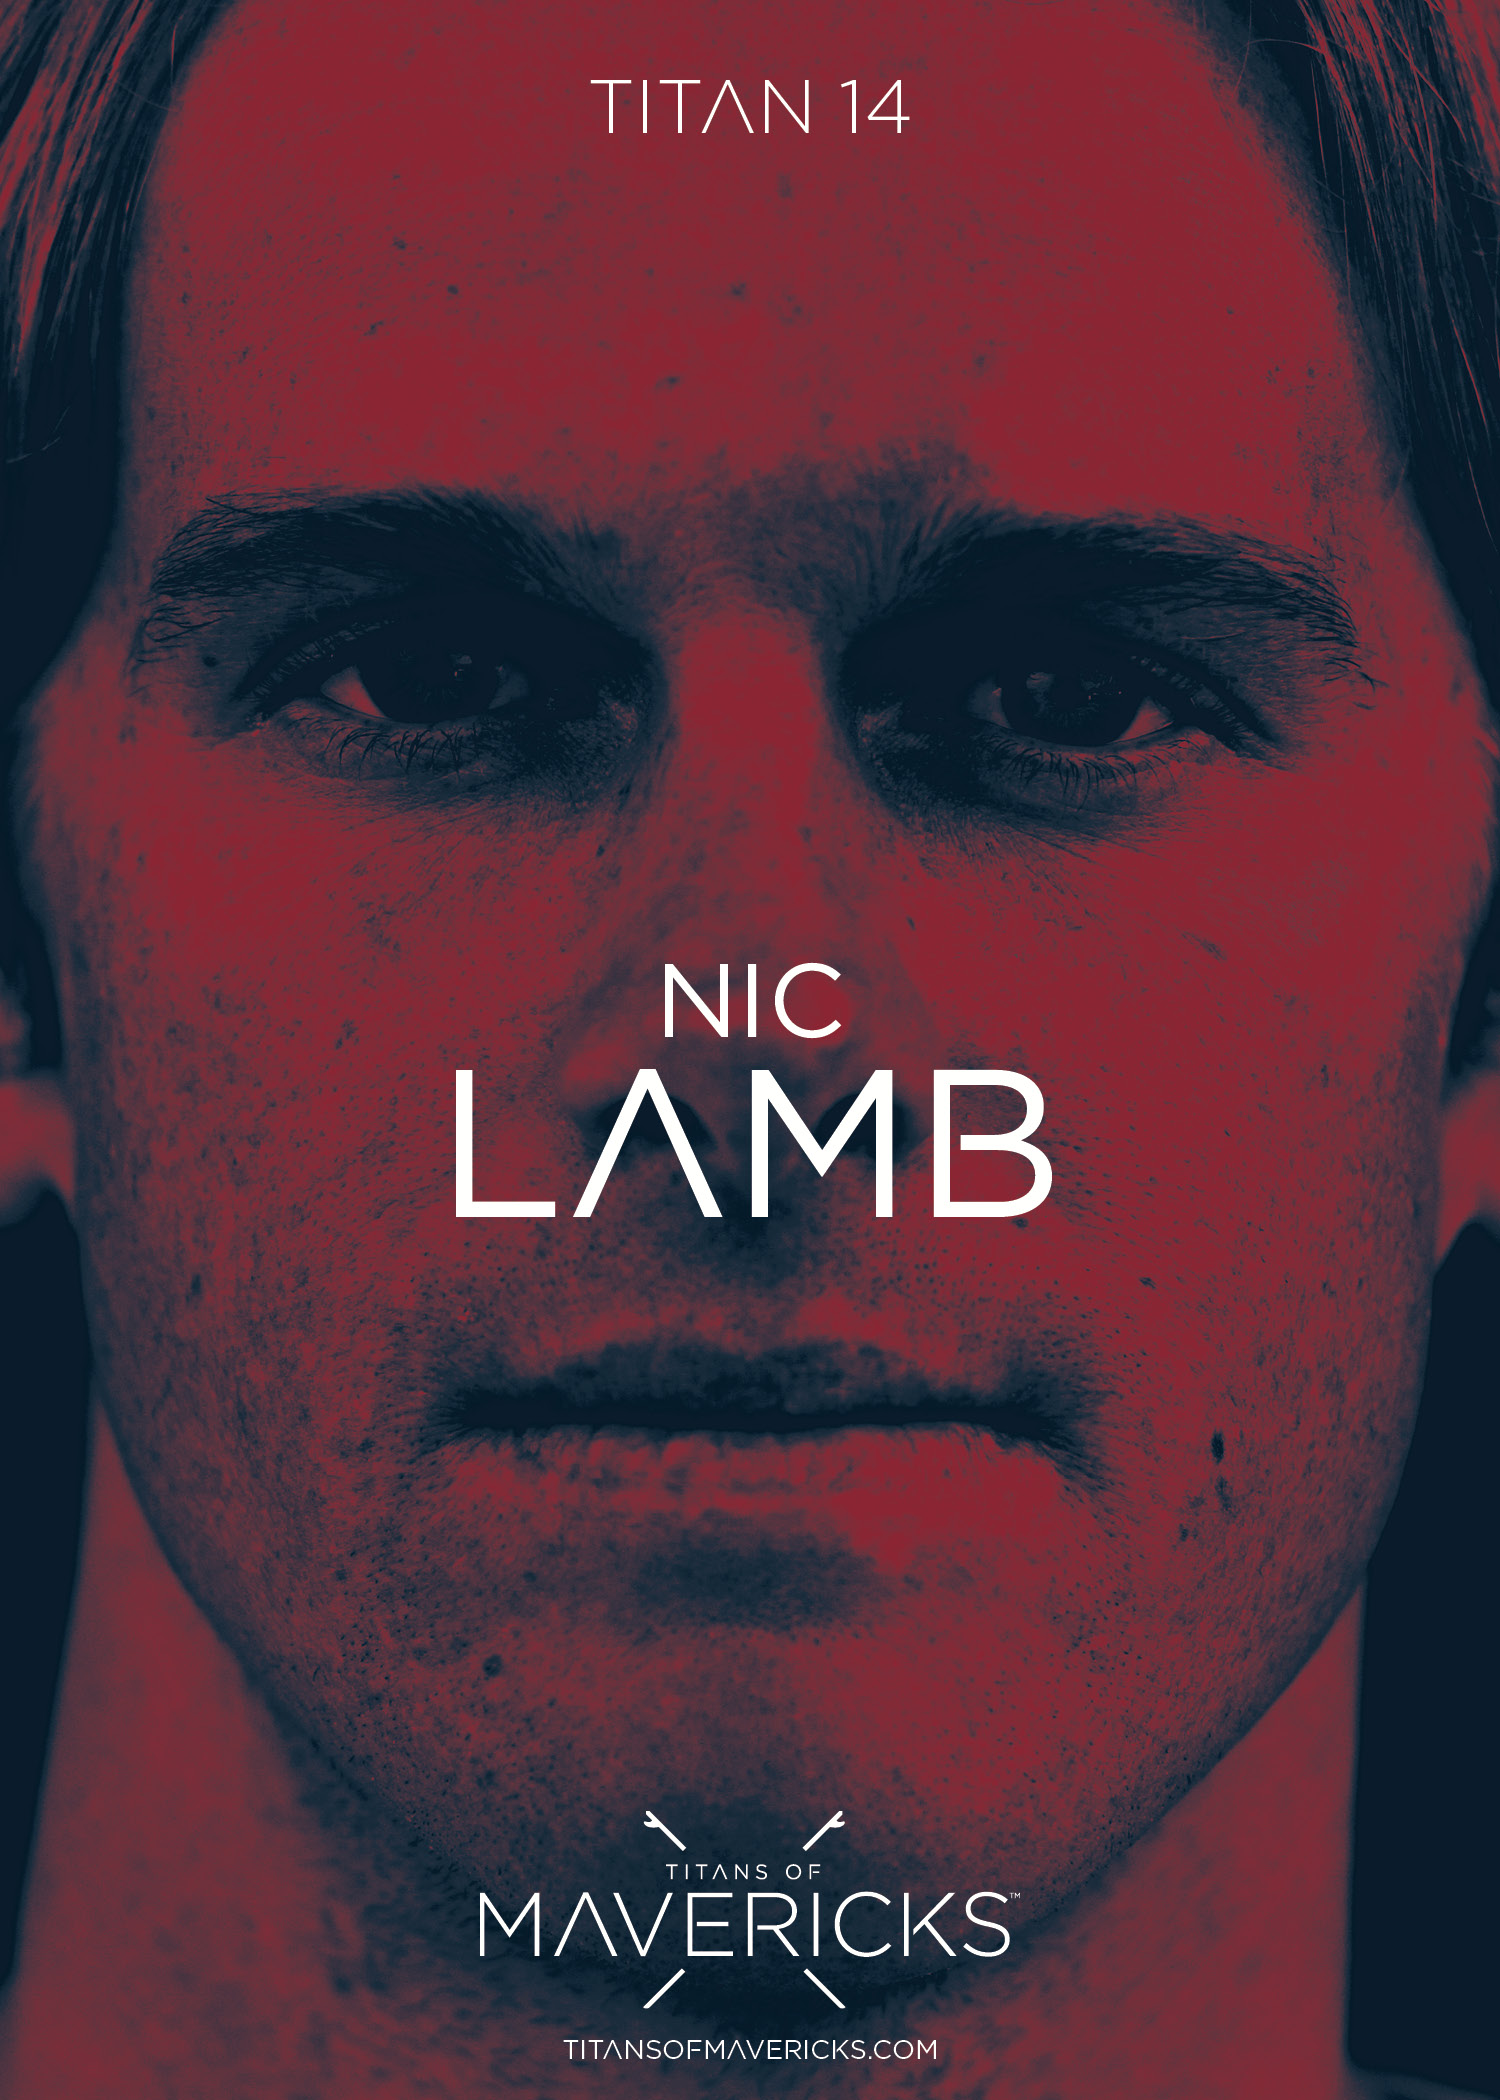 Competitor Poster: Nic Lamb ( 2016 Titans of Mavericks Champion )